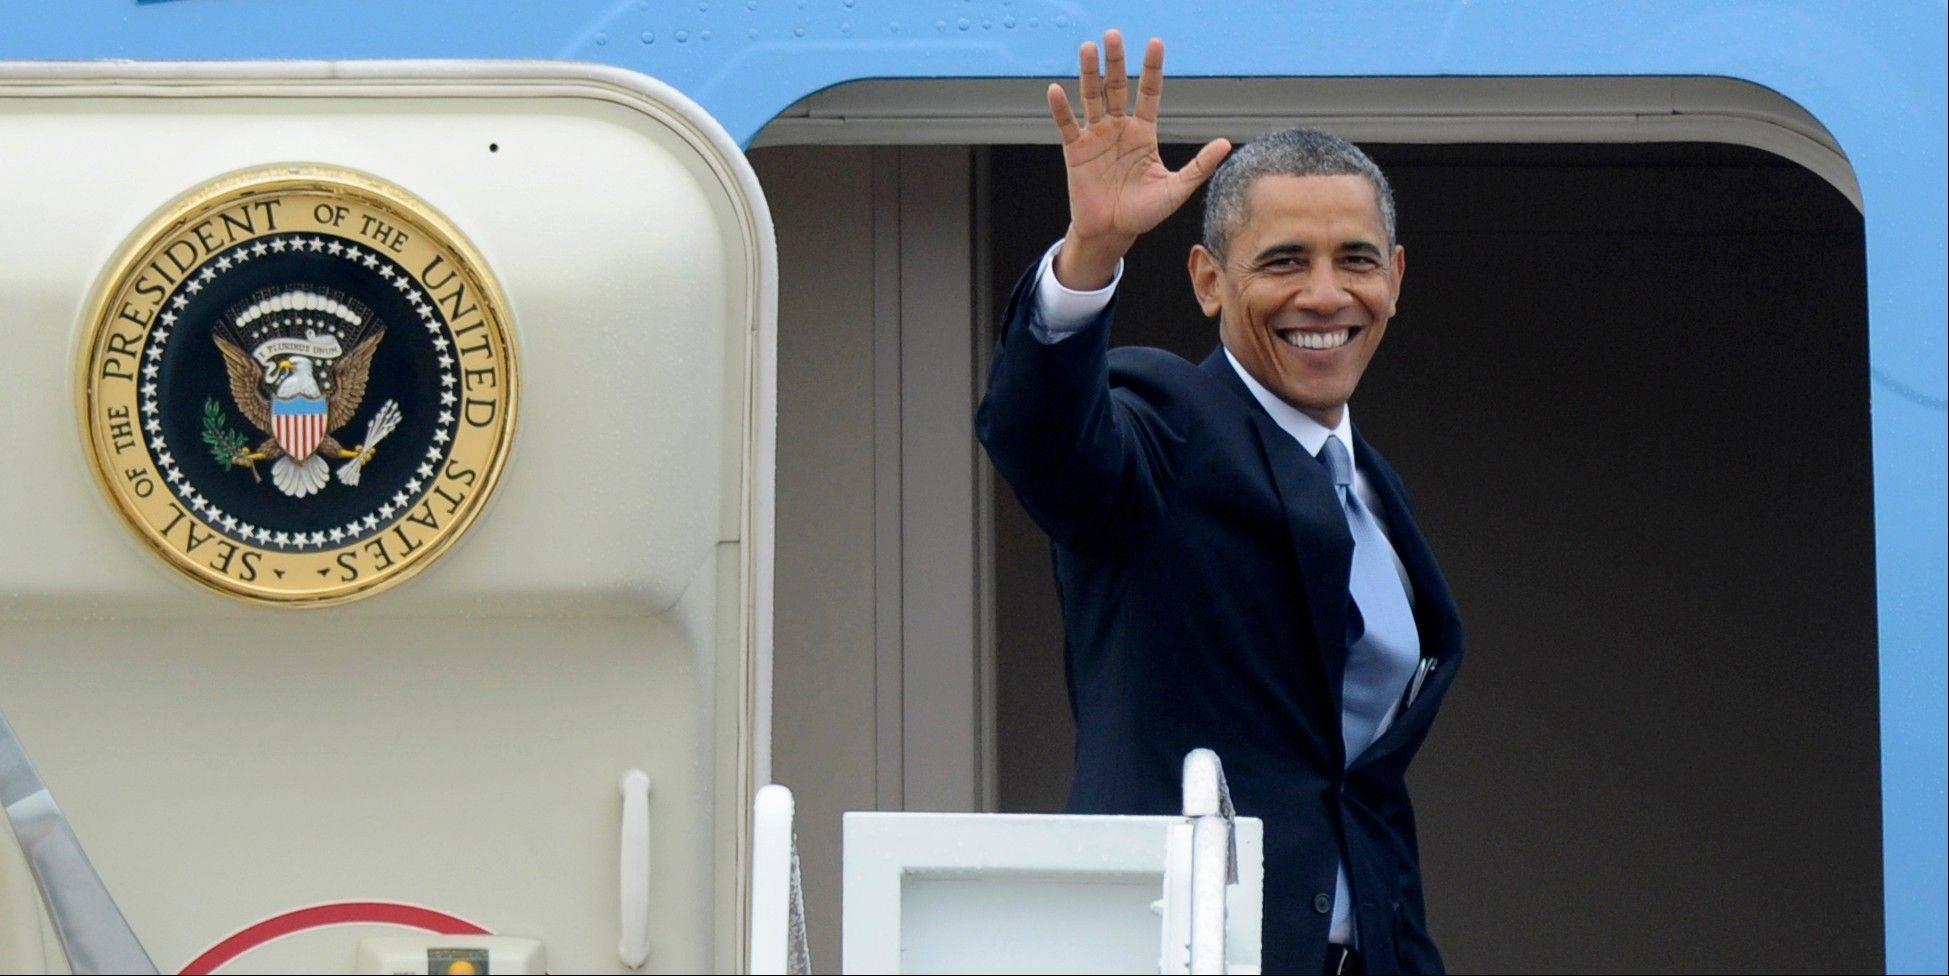 President Barack Obama waves from the top of the steps of Air Force One at Andrews Air Force Base Md., Tuesday, Aug. 6, 2013. Obama is traveling to Arizona and California.